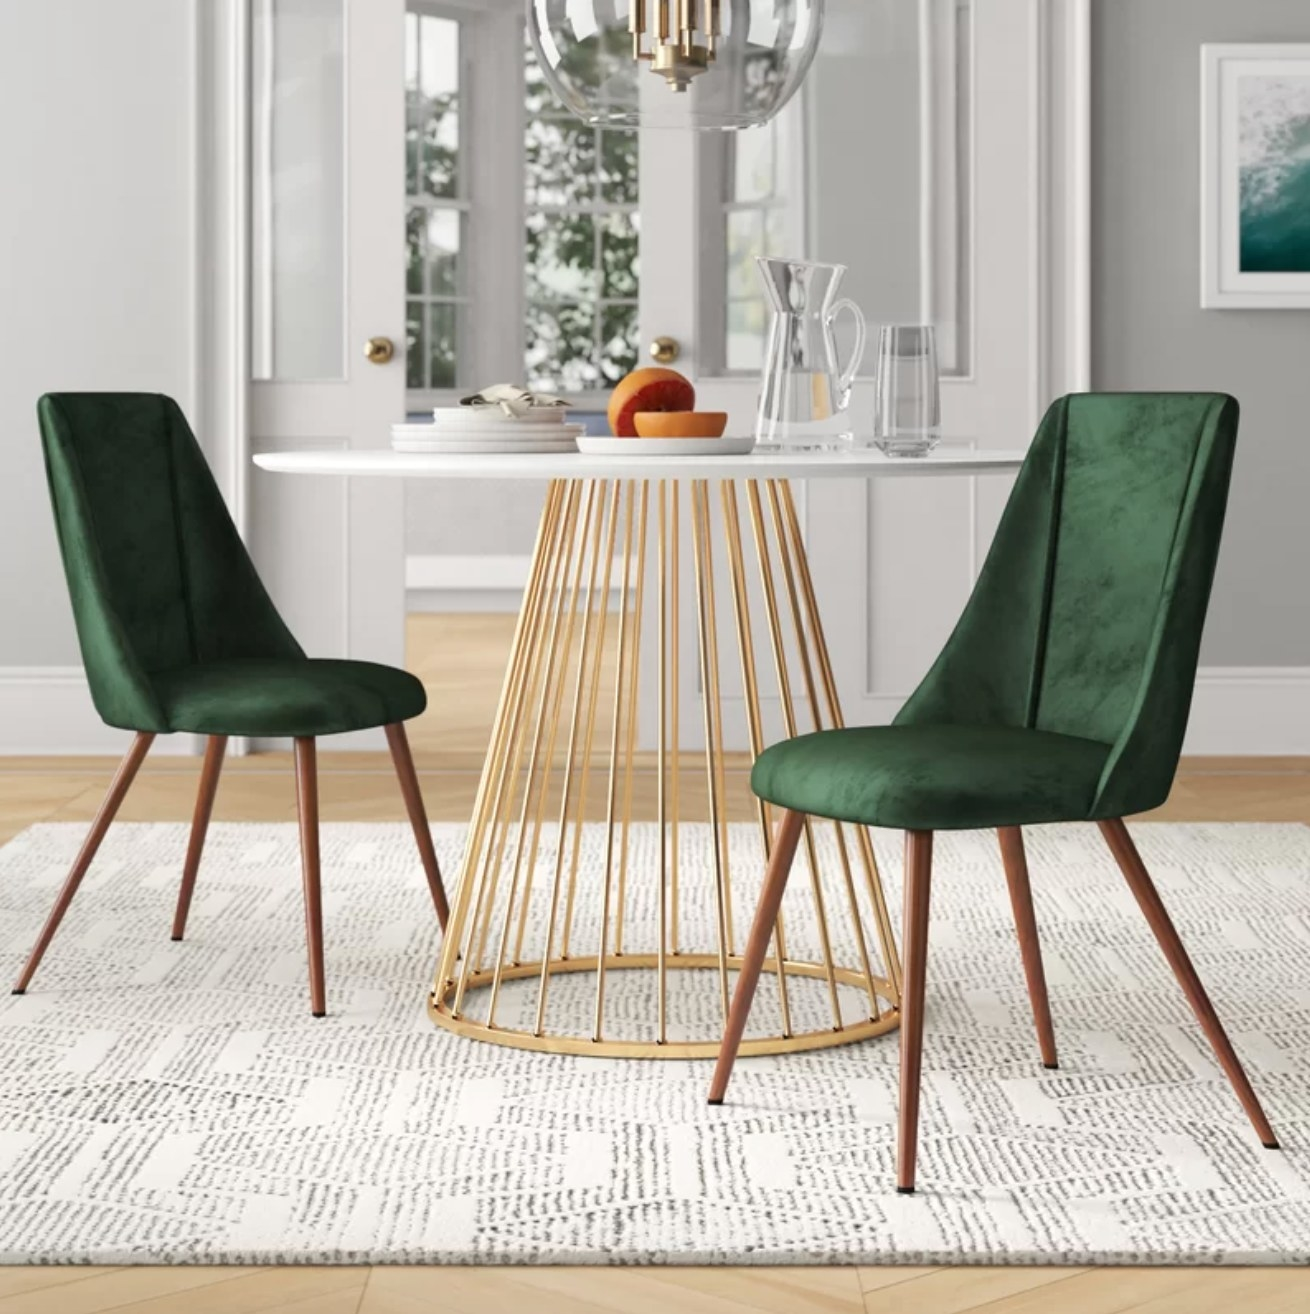 The chairs in green by a dining table holding a halved grapefruit on a plate